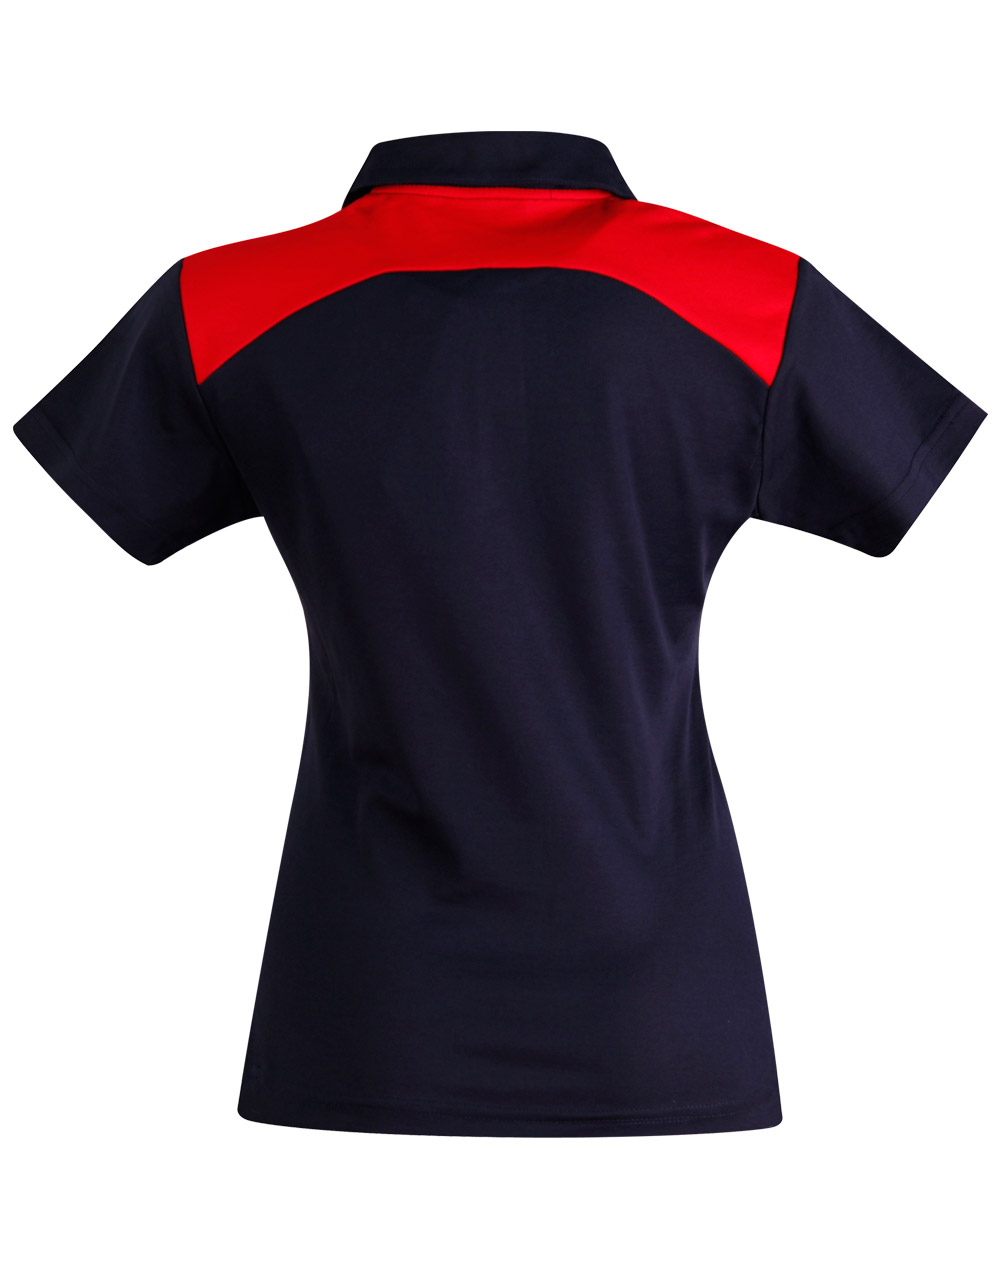 https://s3-ap-southeast-1.amazonaws.com/ws-imgs/POLOSHIRTS/PS32A_NavyRed_Back.jpg